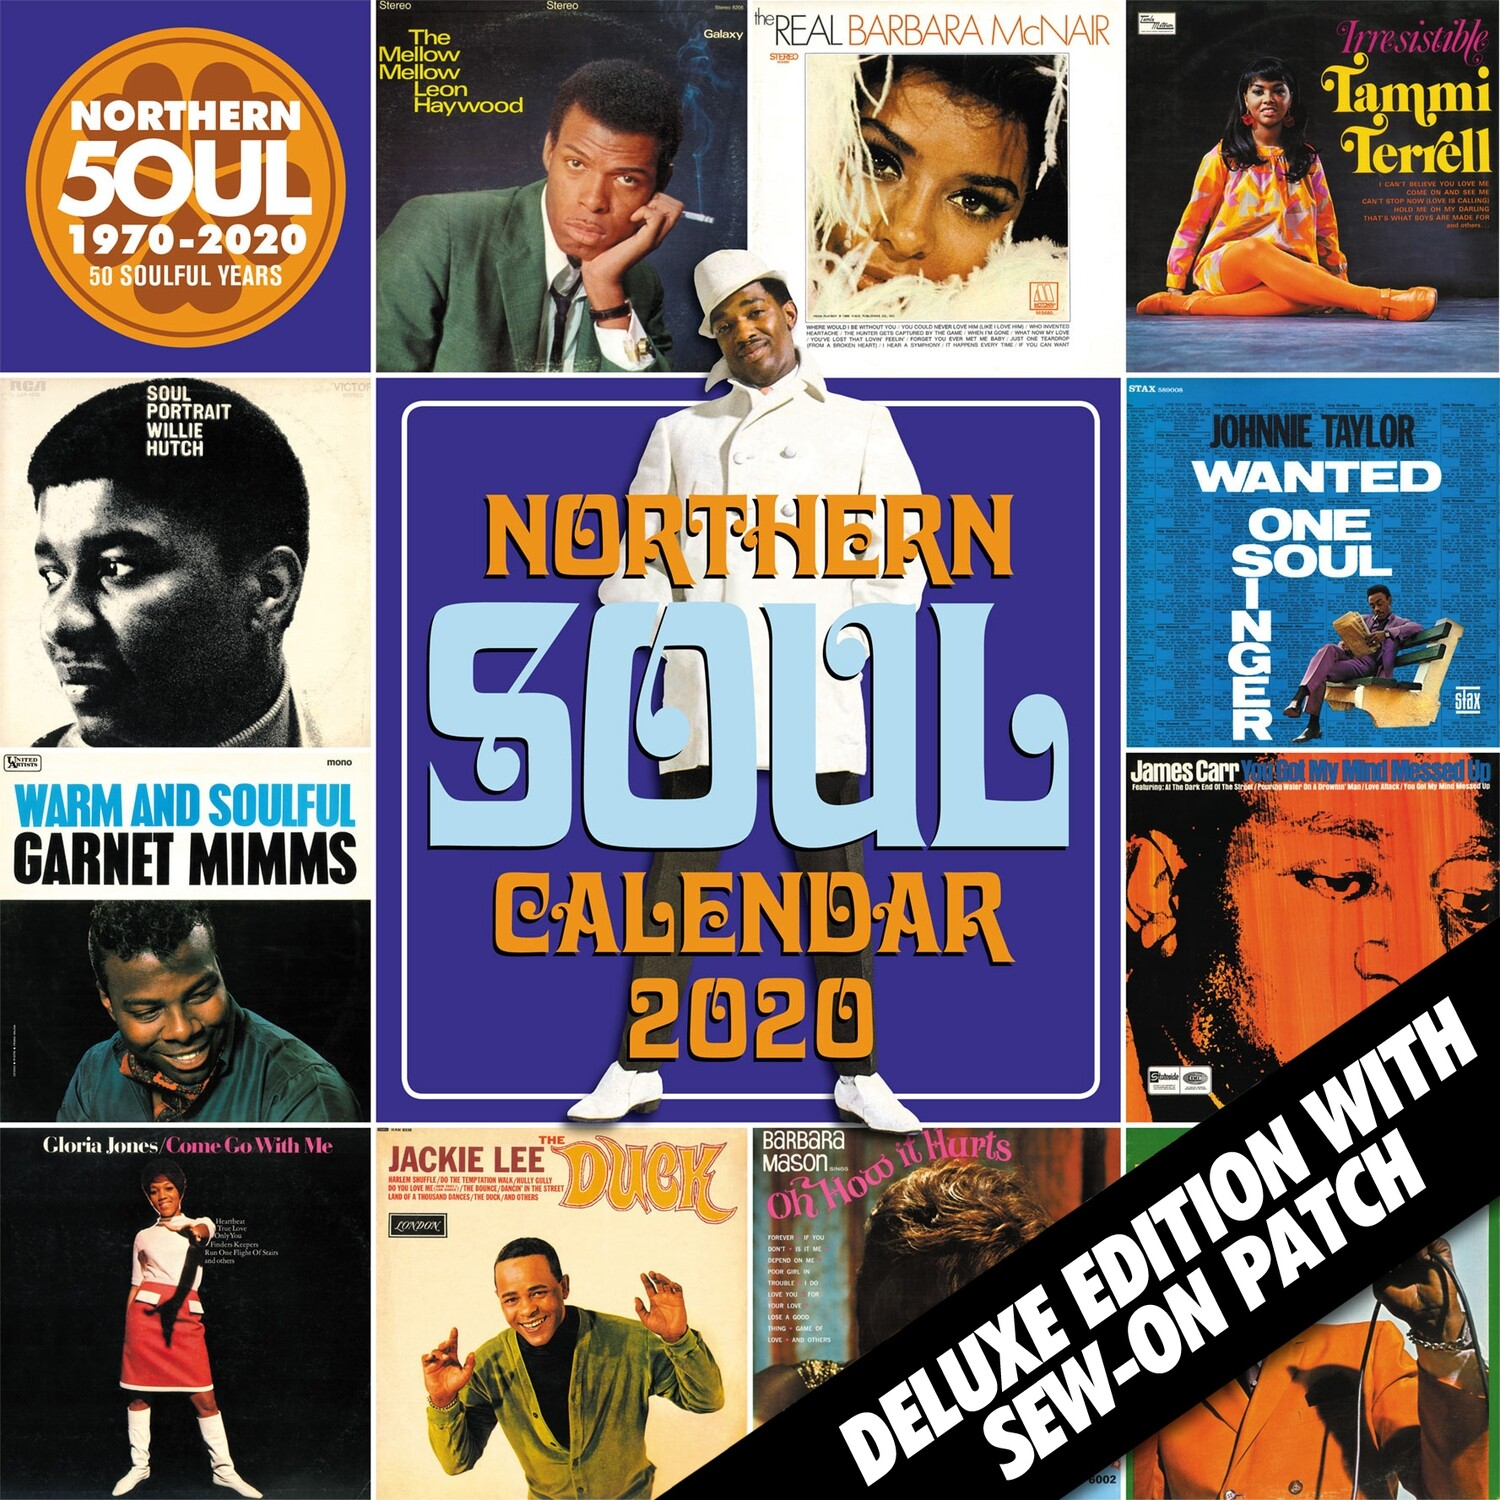 Northern Soul Calendar 2020 - Deluxe Edition